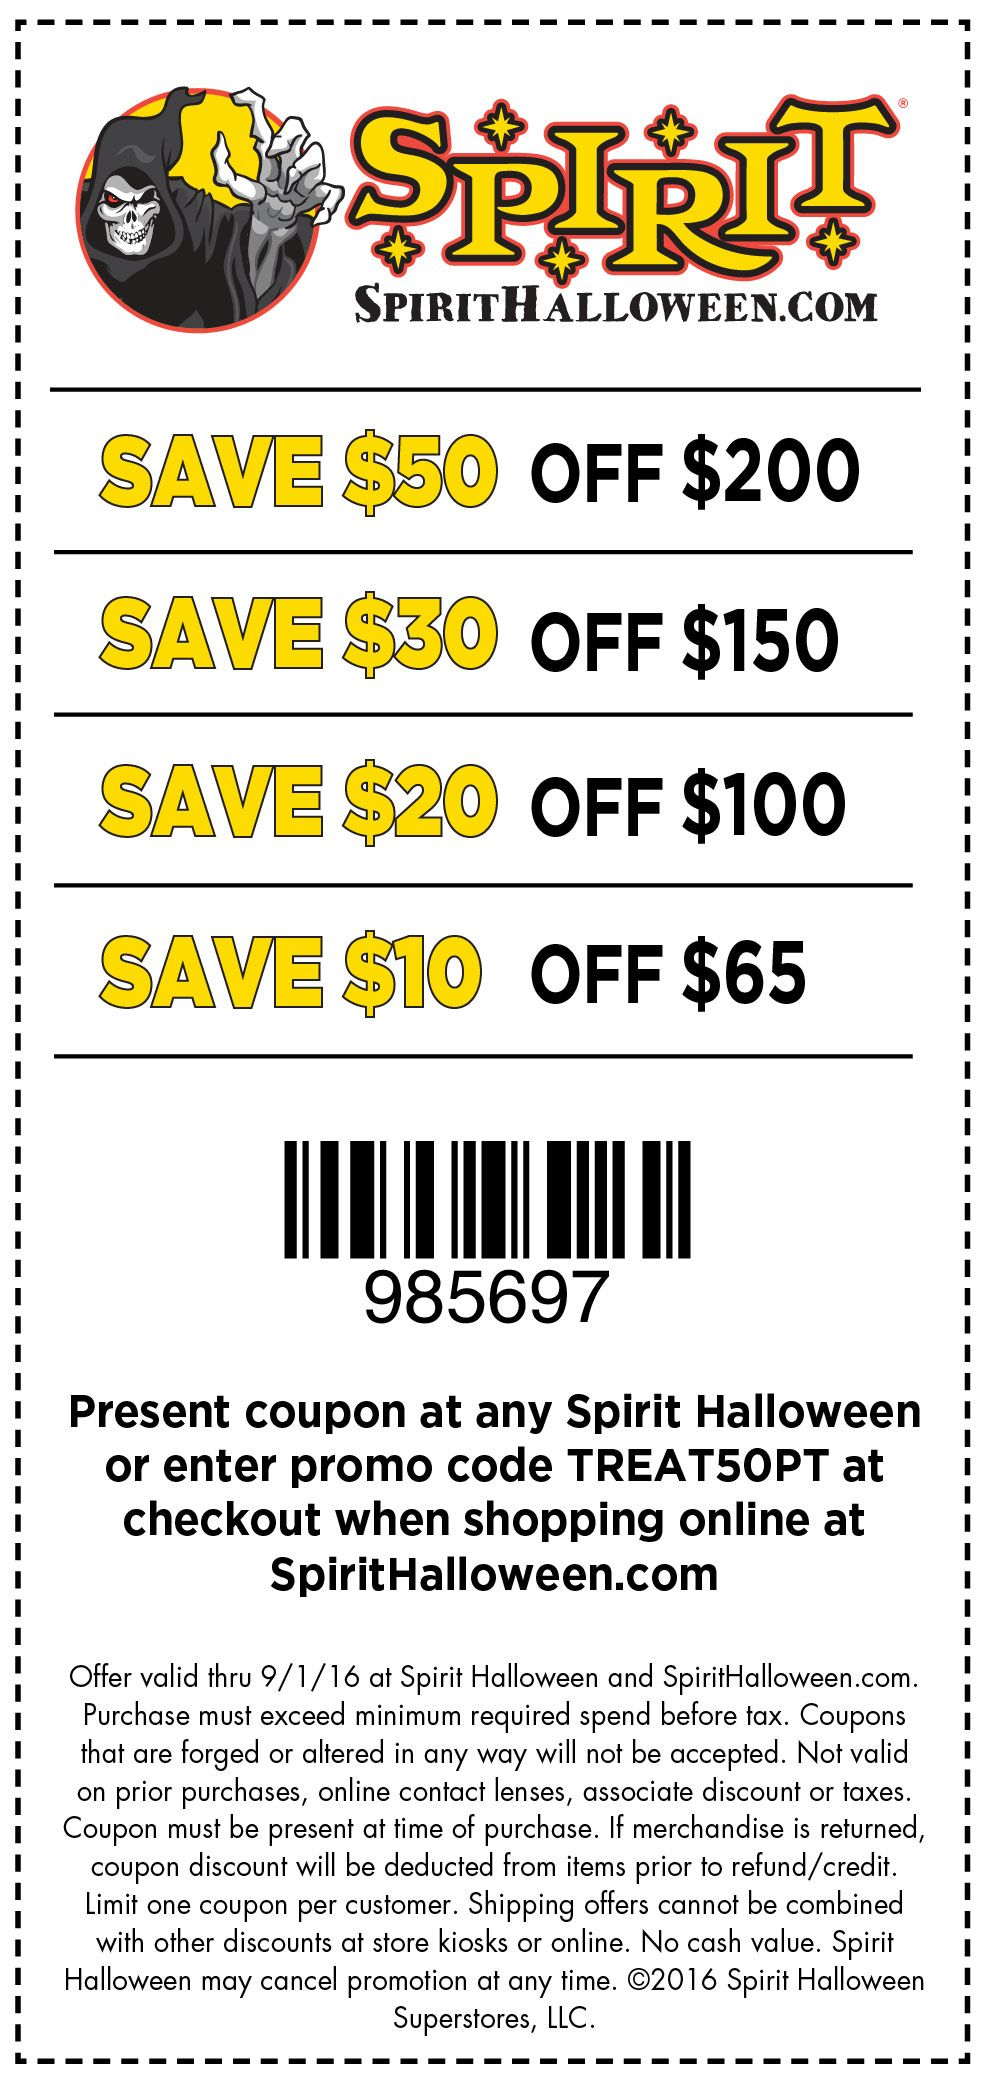 78 Best images about sprit coupons on Pinterest | This weekend ...